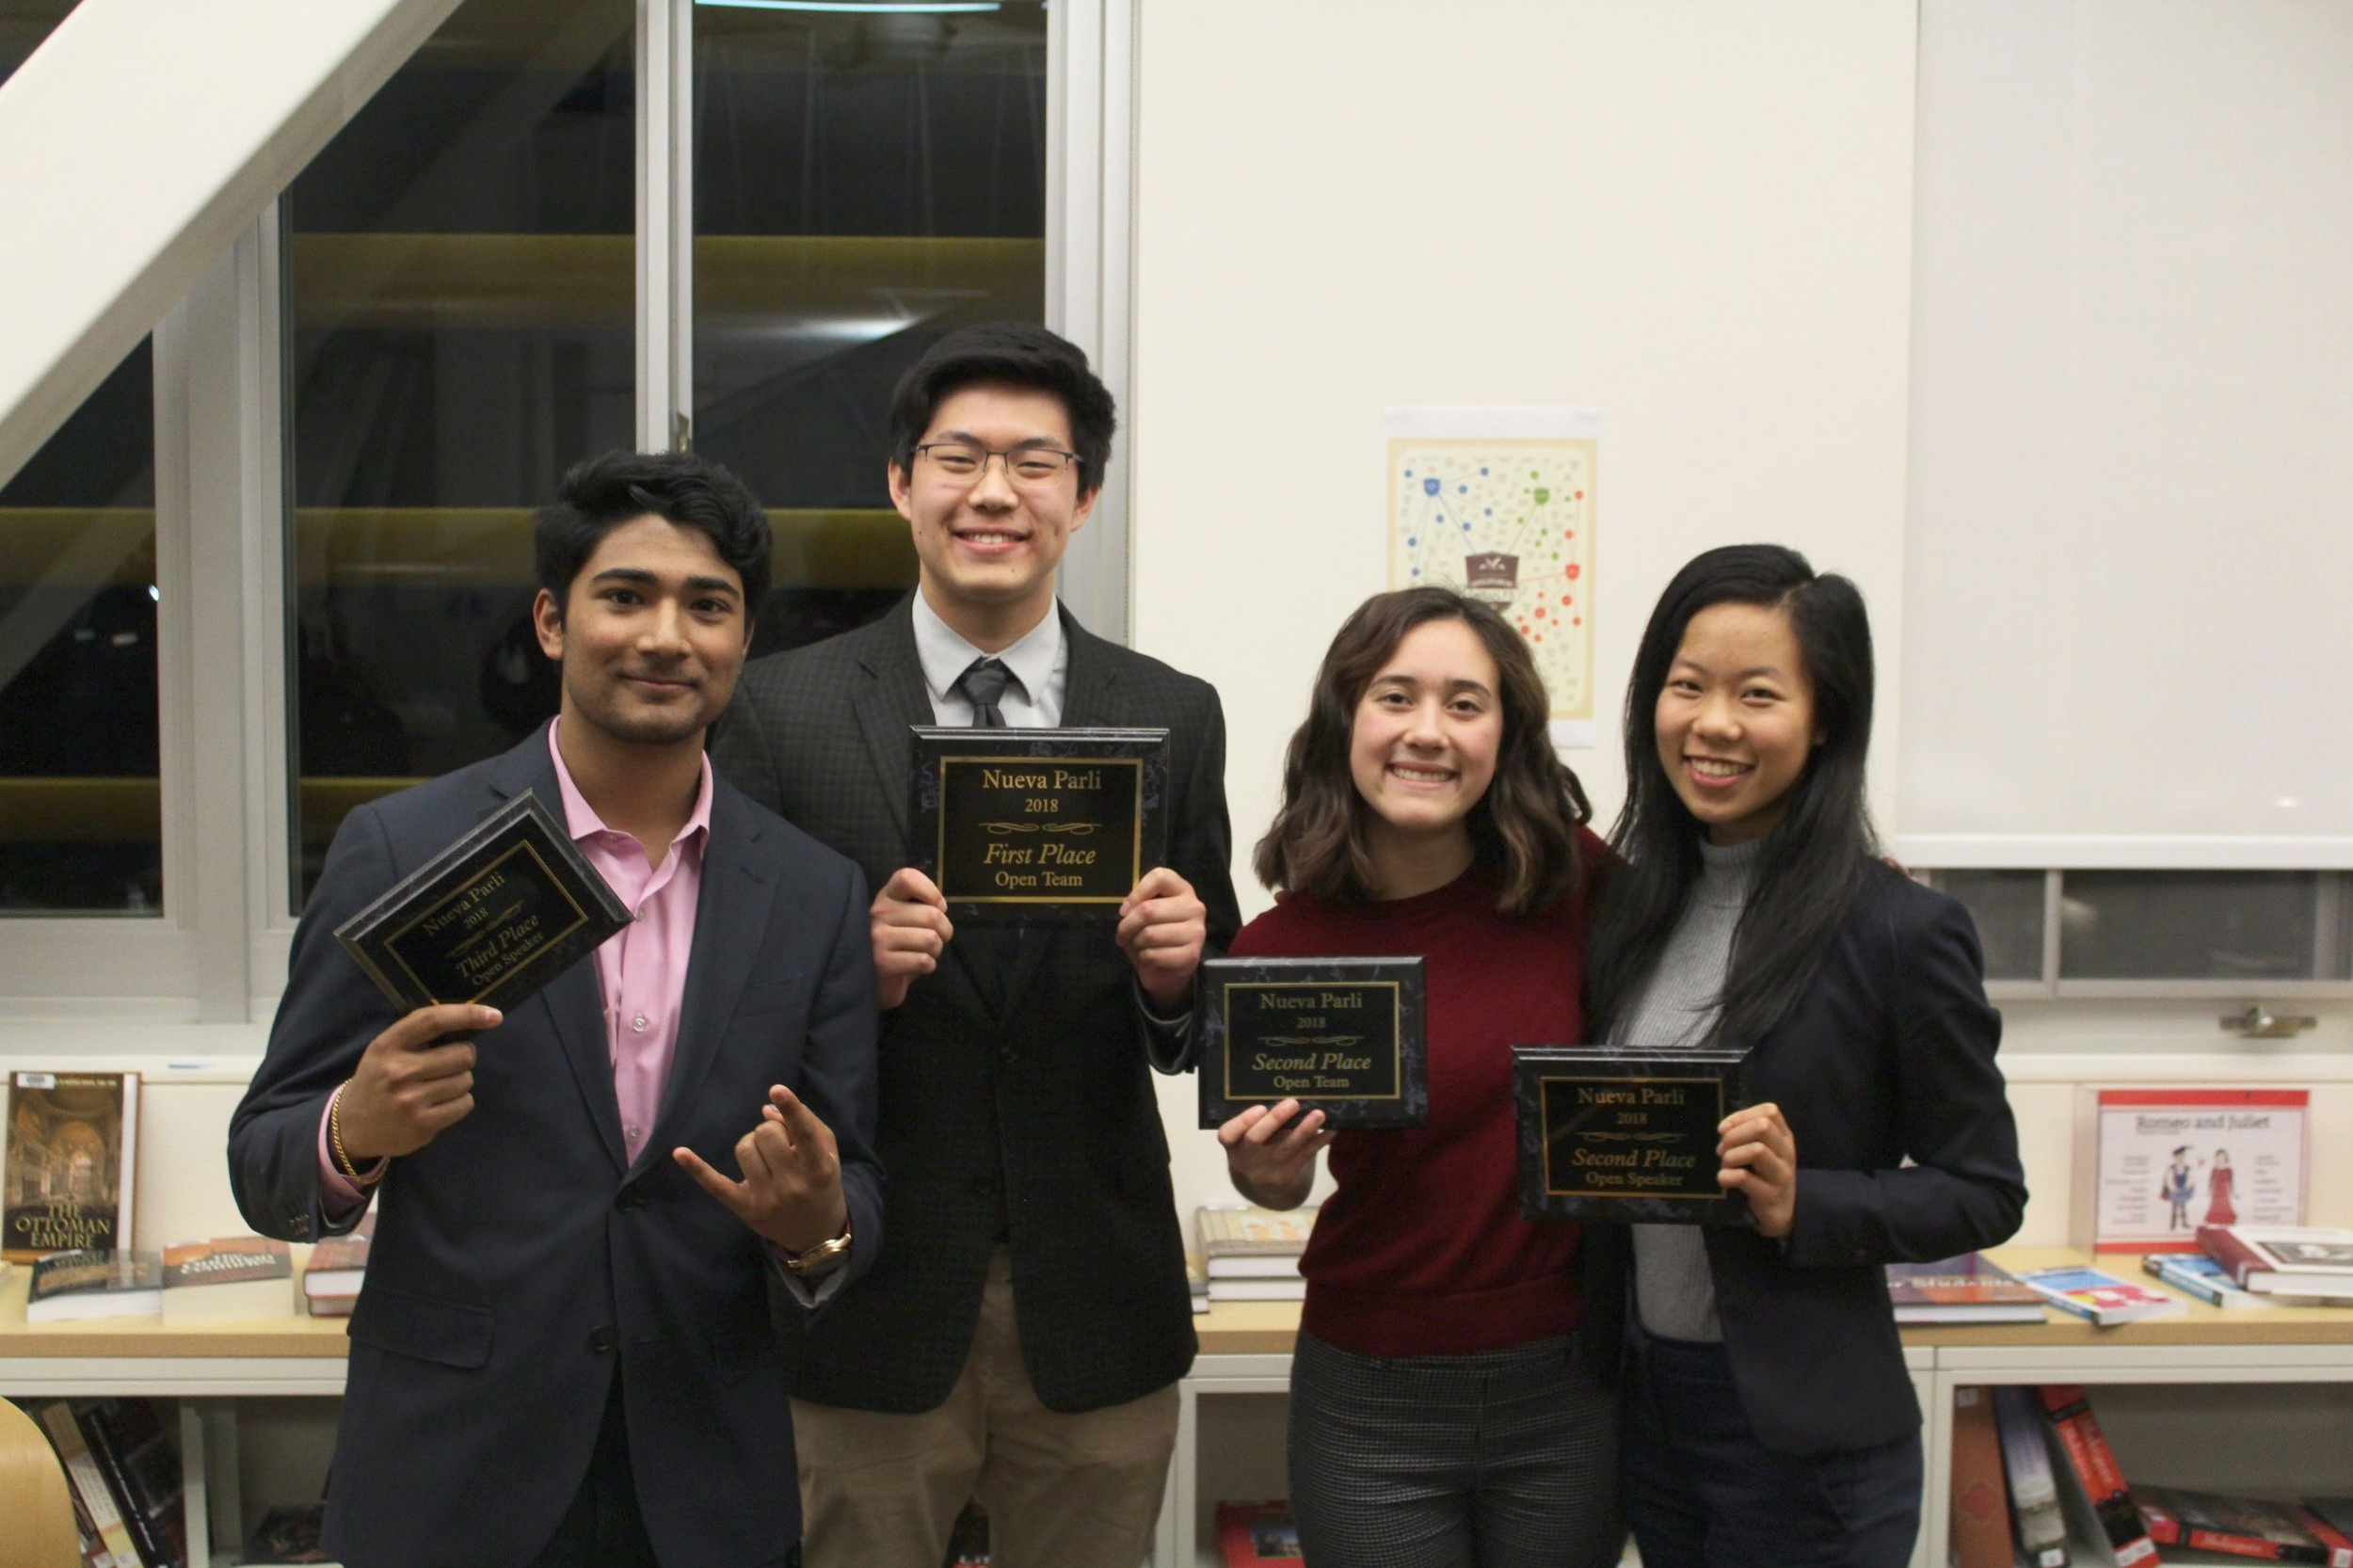 (left to right) Visht, Deng, Bonet & Yuan pose with awards after closing out